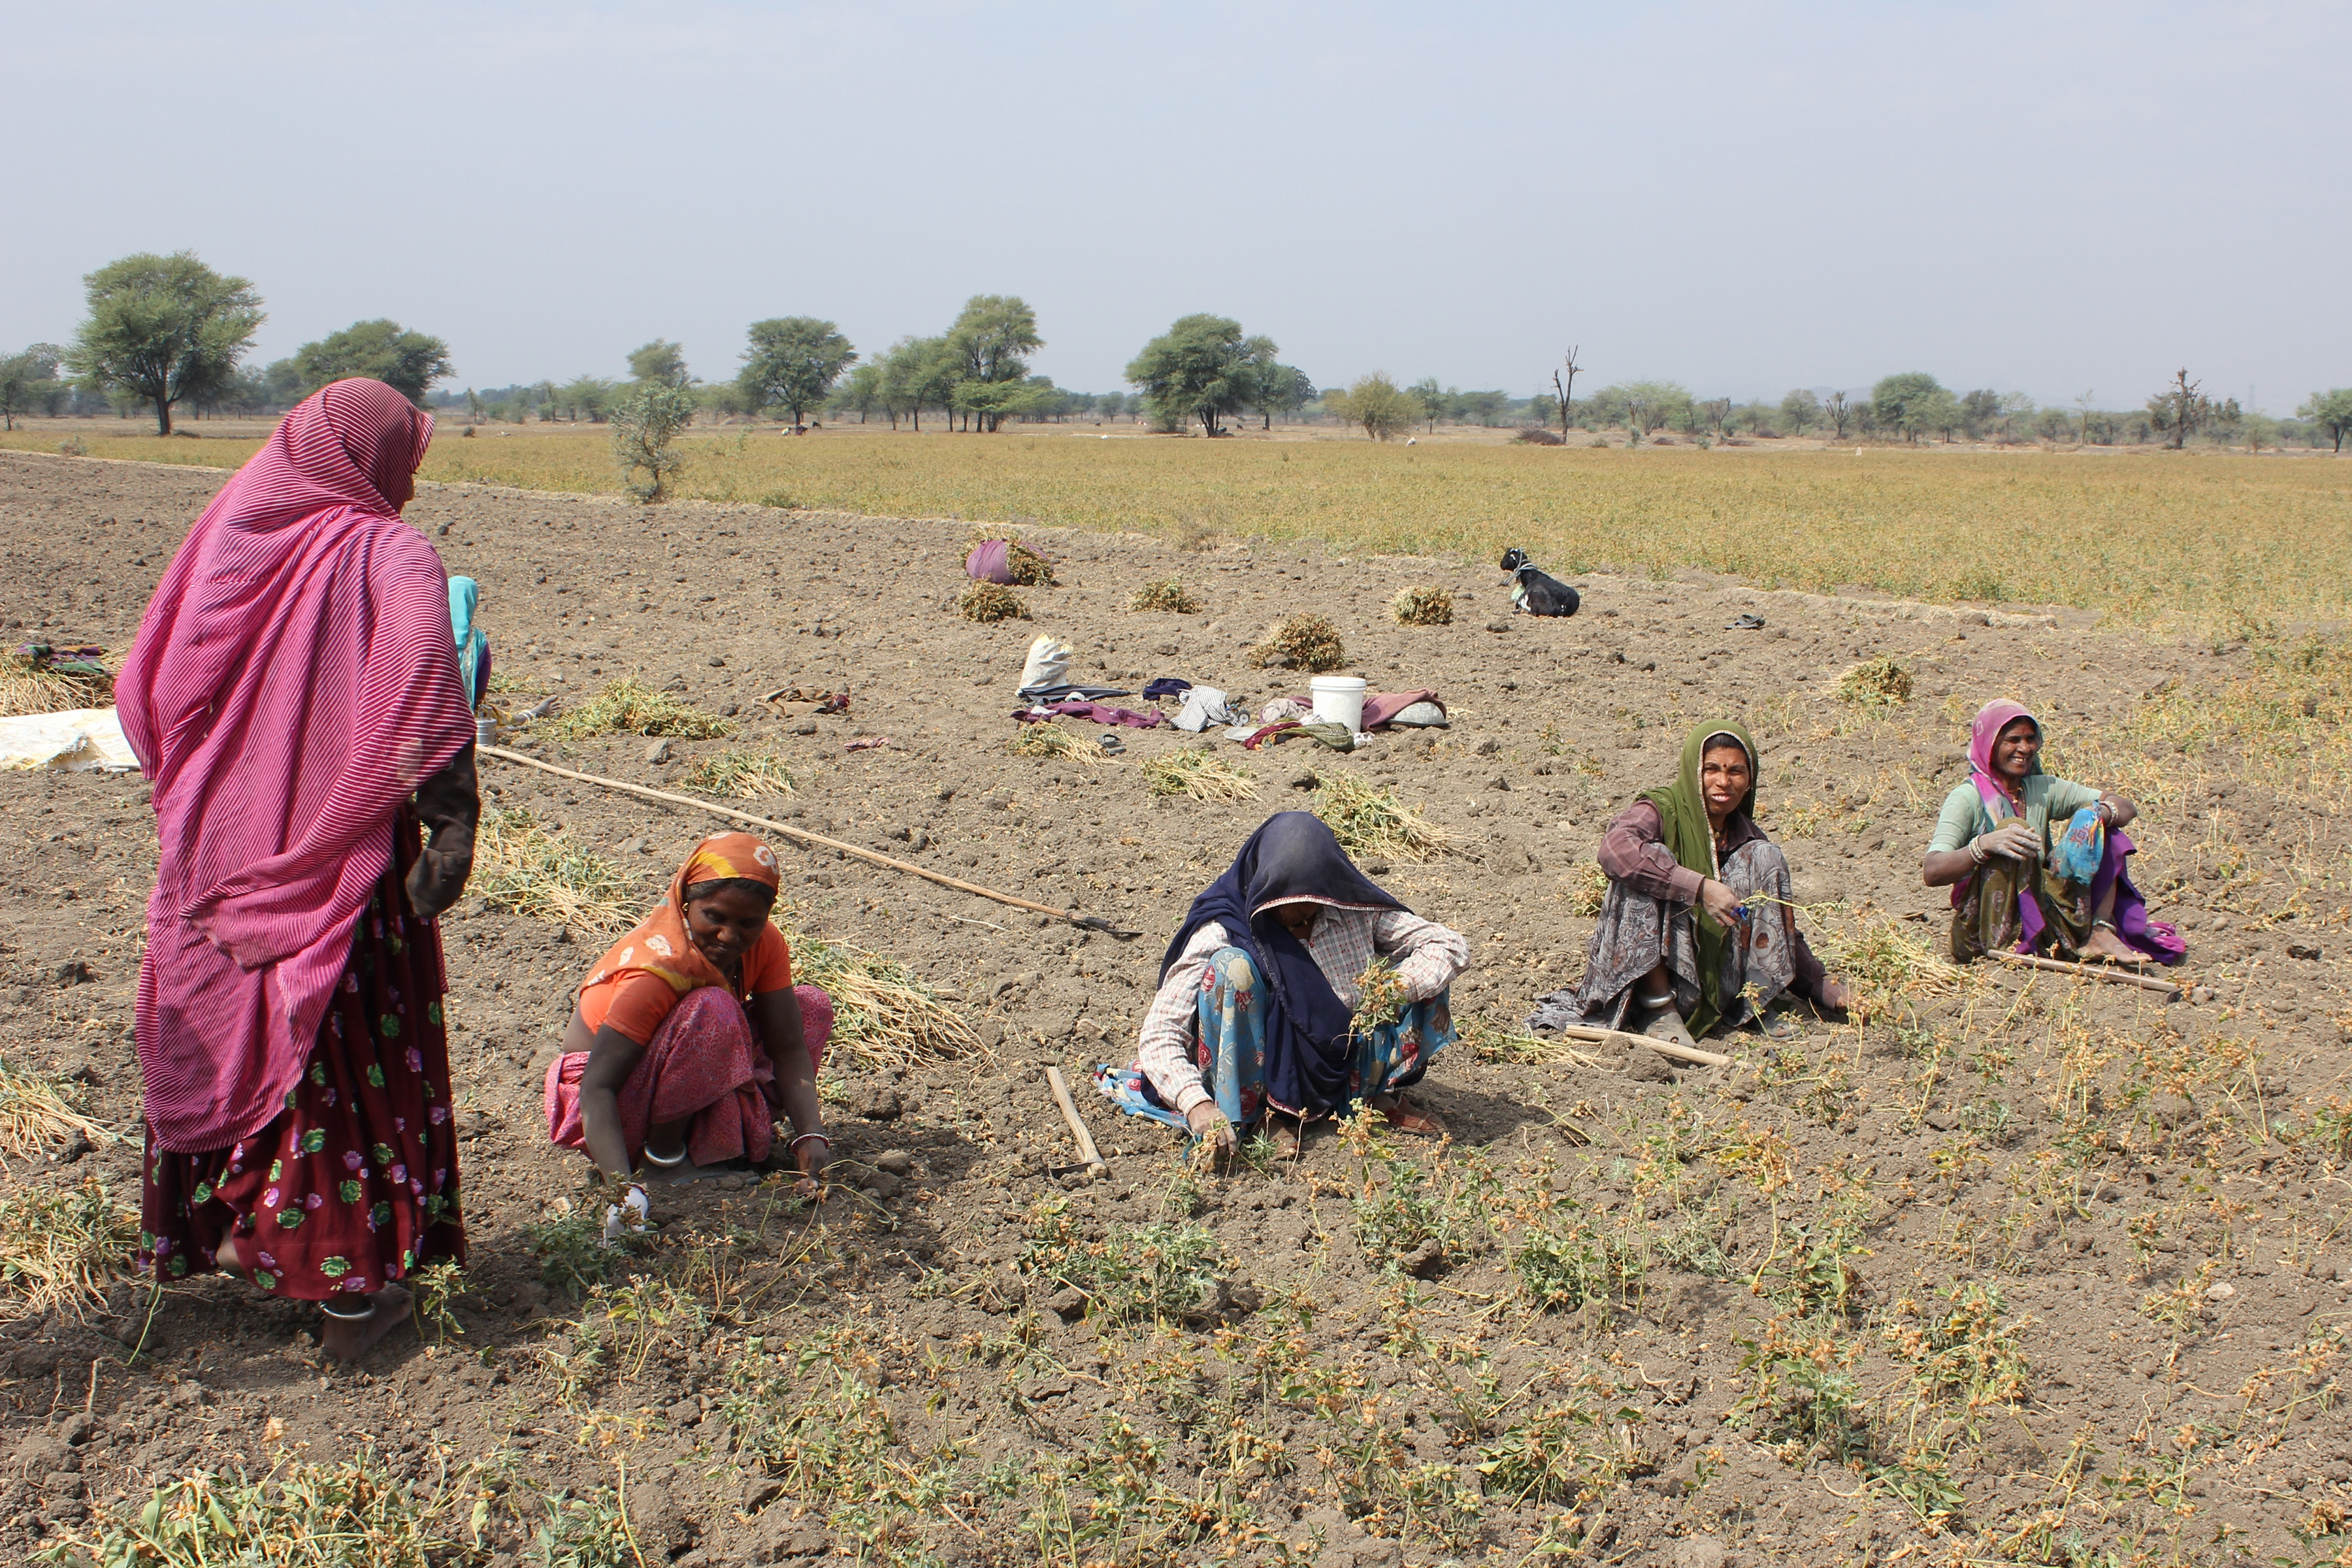 Farmers harvesting Ashwagandha by hand and using tools in Ashwagandha field in India